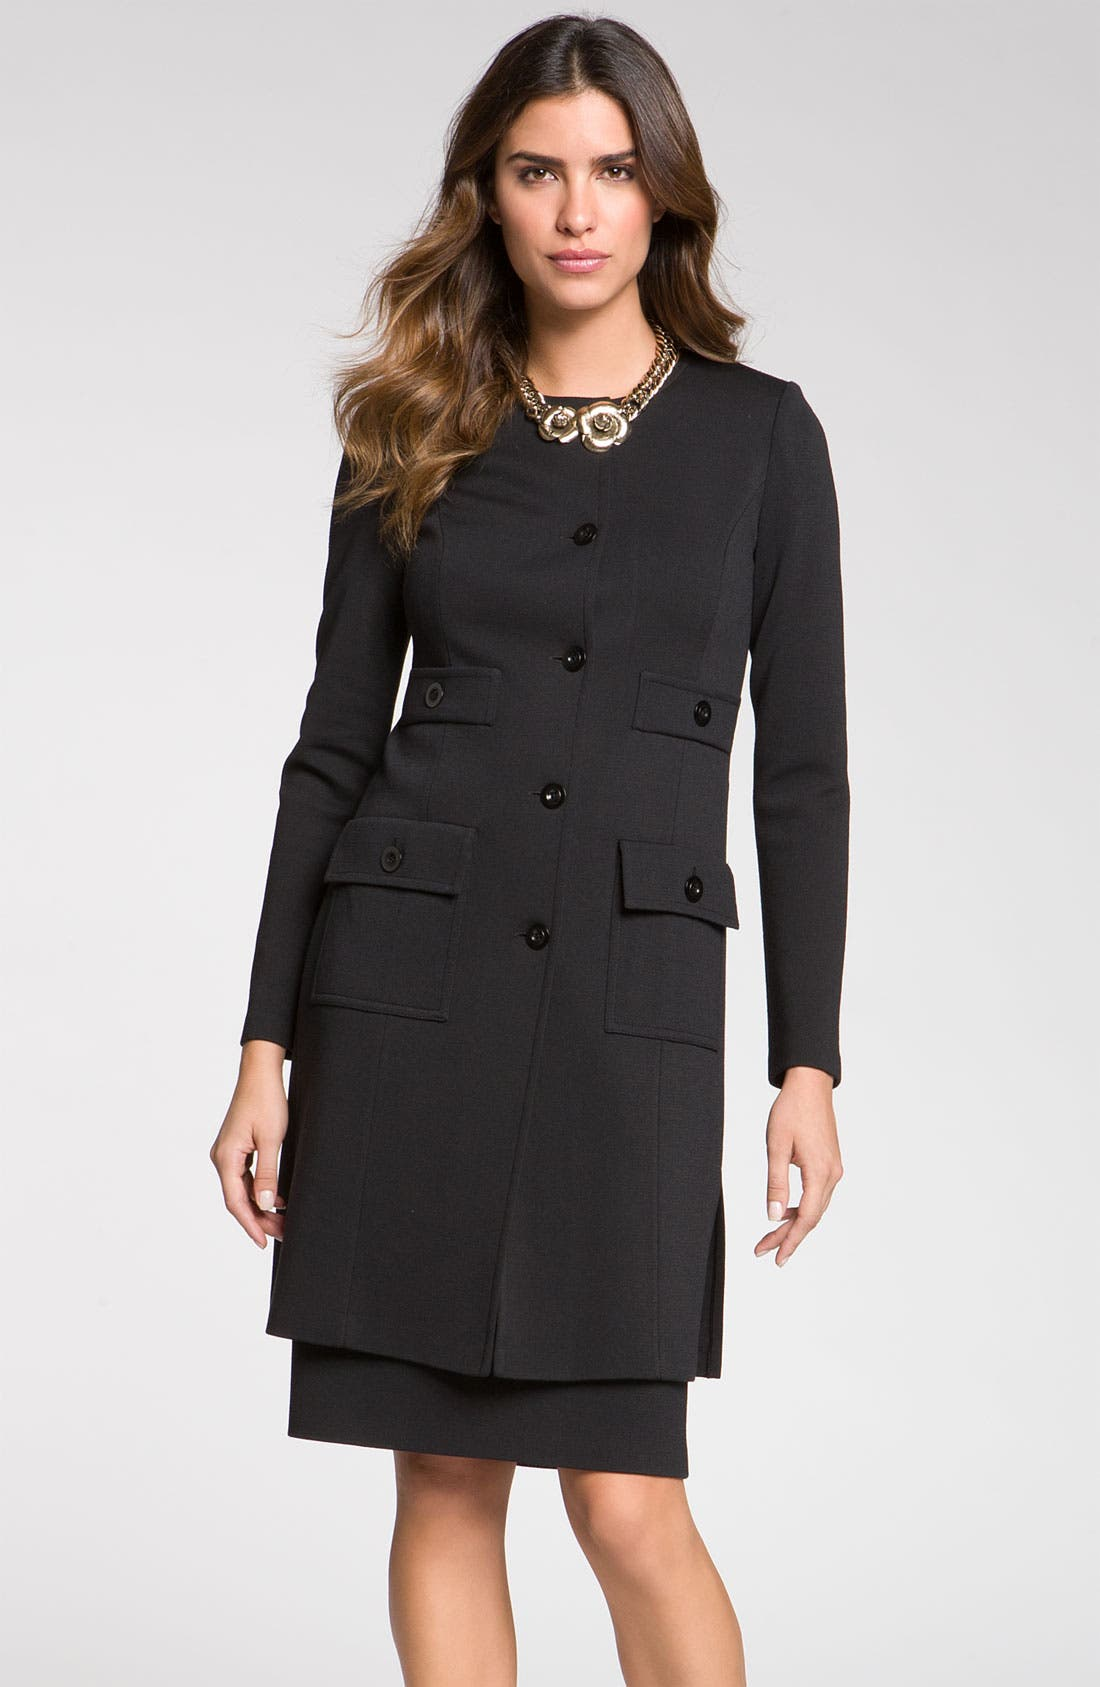 Main Image - St. John Collection Jewel Neck Milano Knit Topper